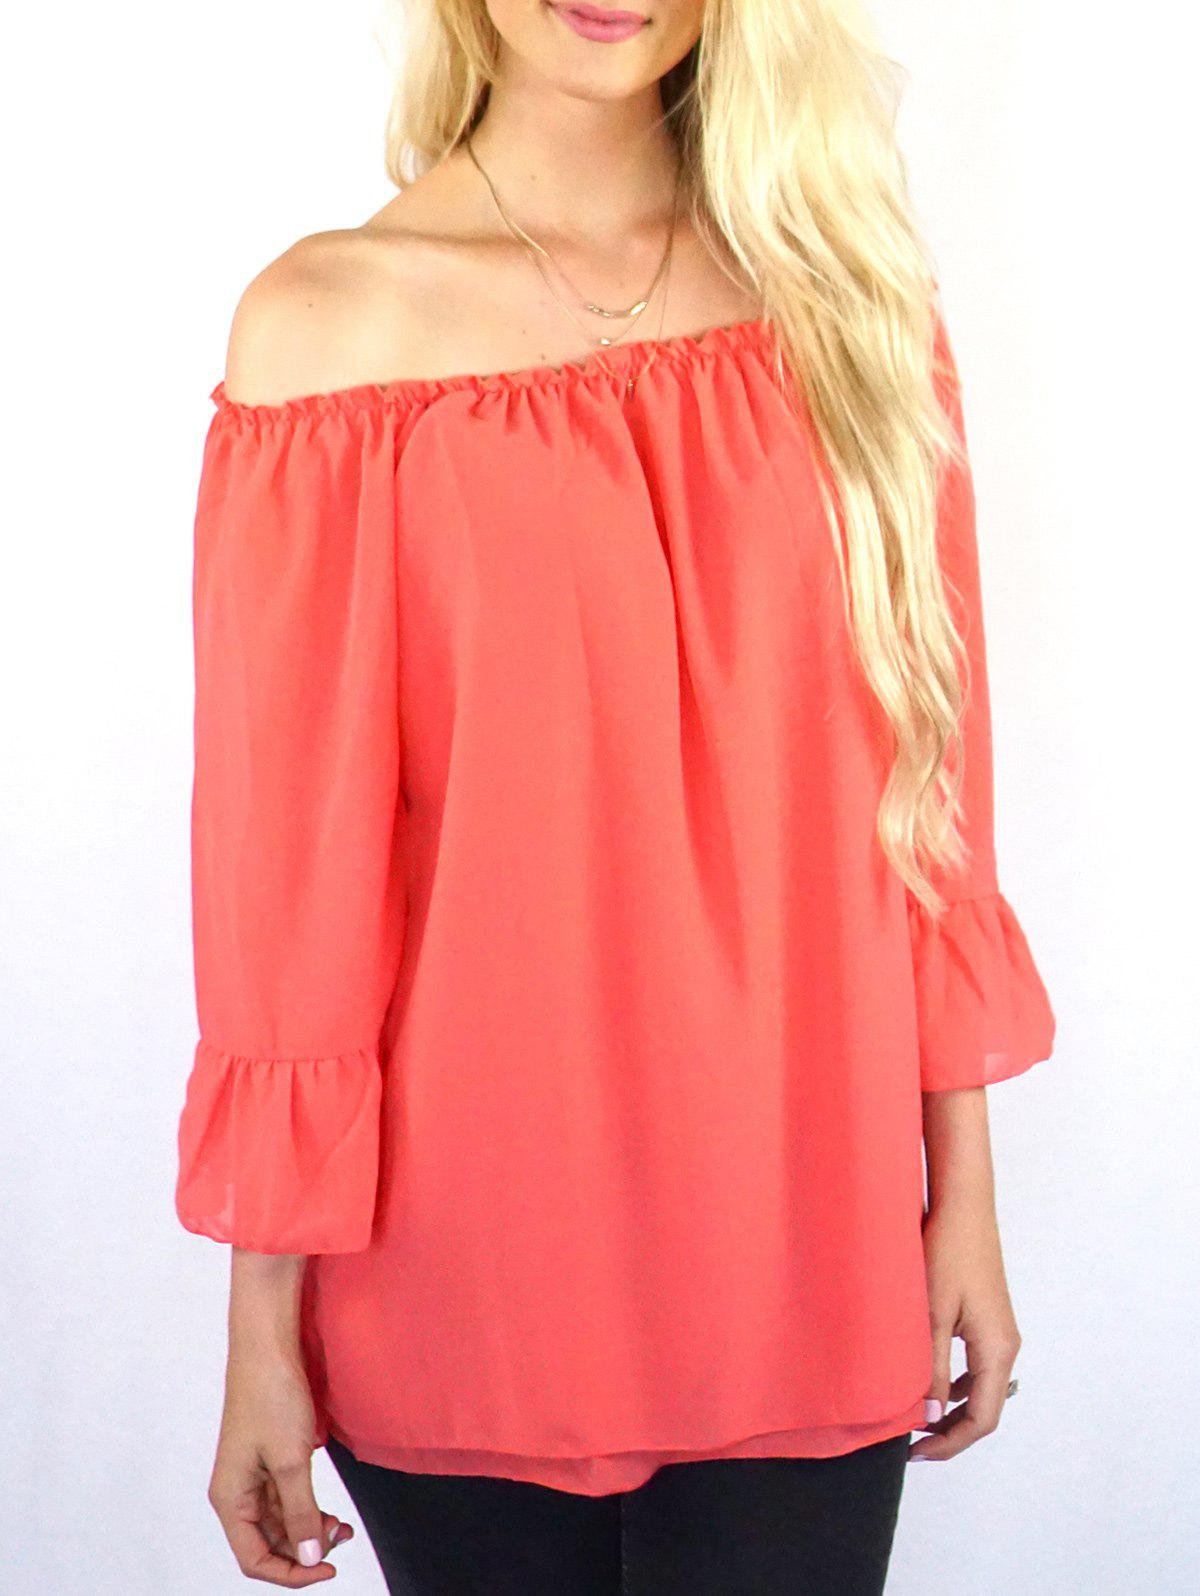 Endearing Off-The-Shoulder Pure Colour Ruffled Blouse For Women